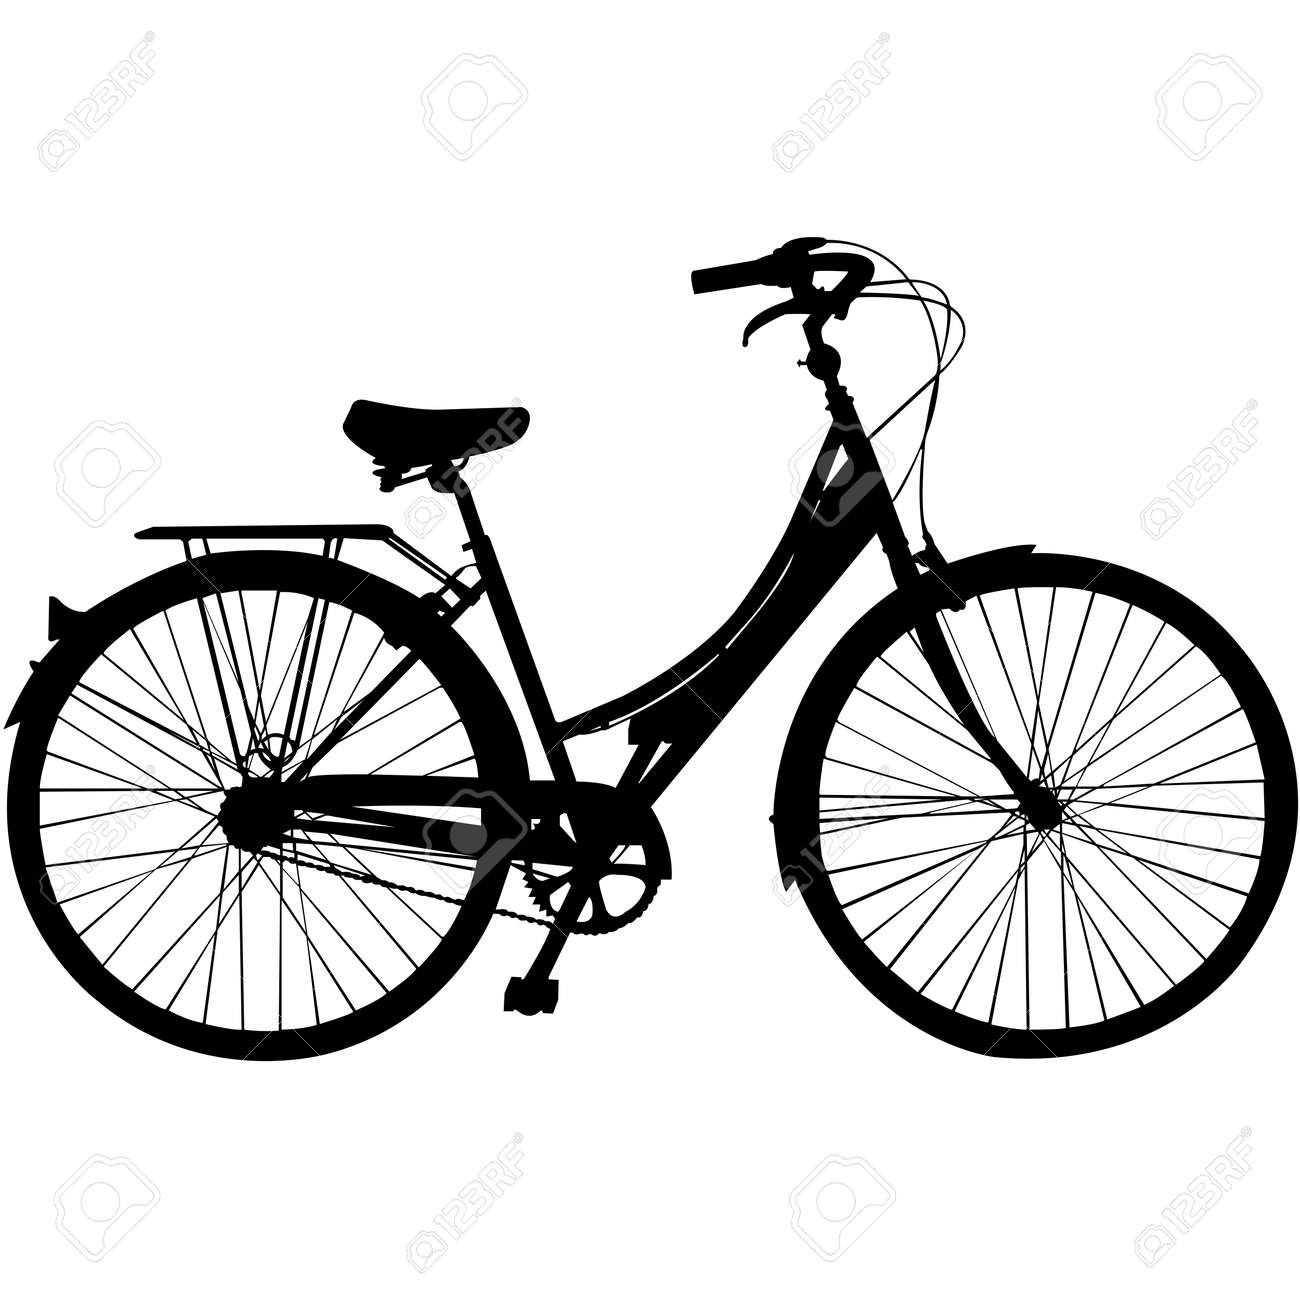 Bicycle Silhouette Vector - 158078593